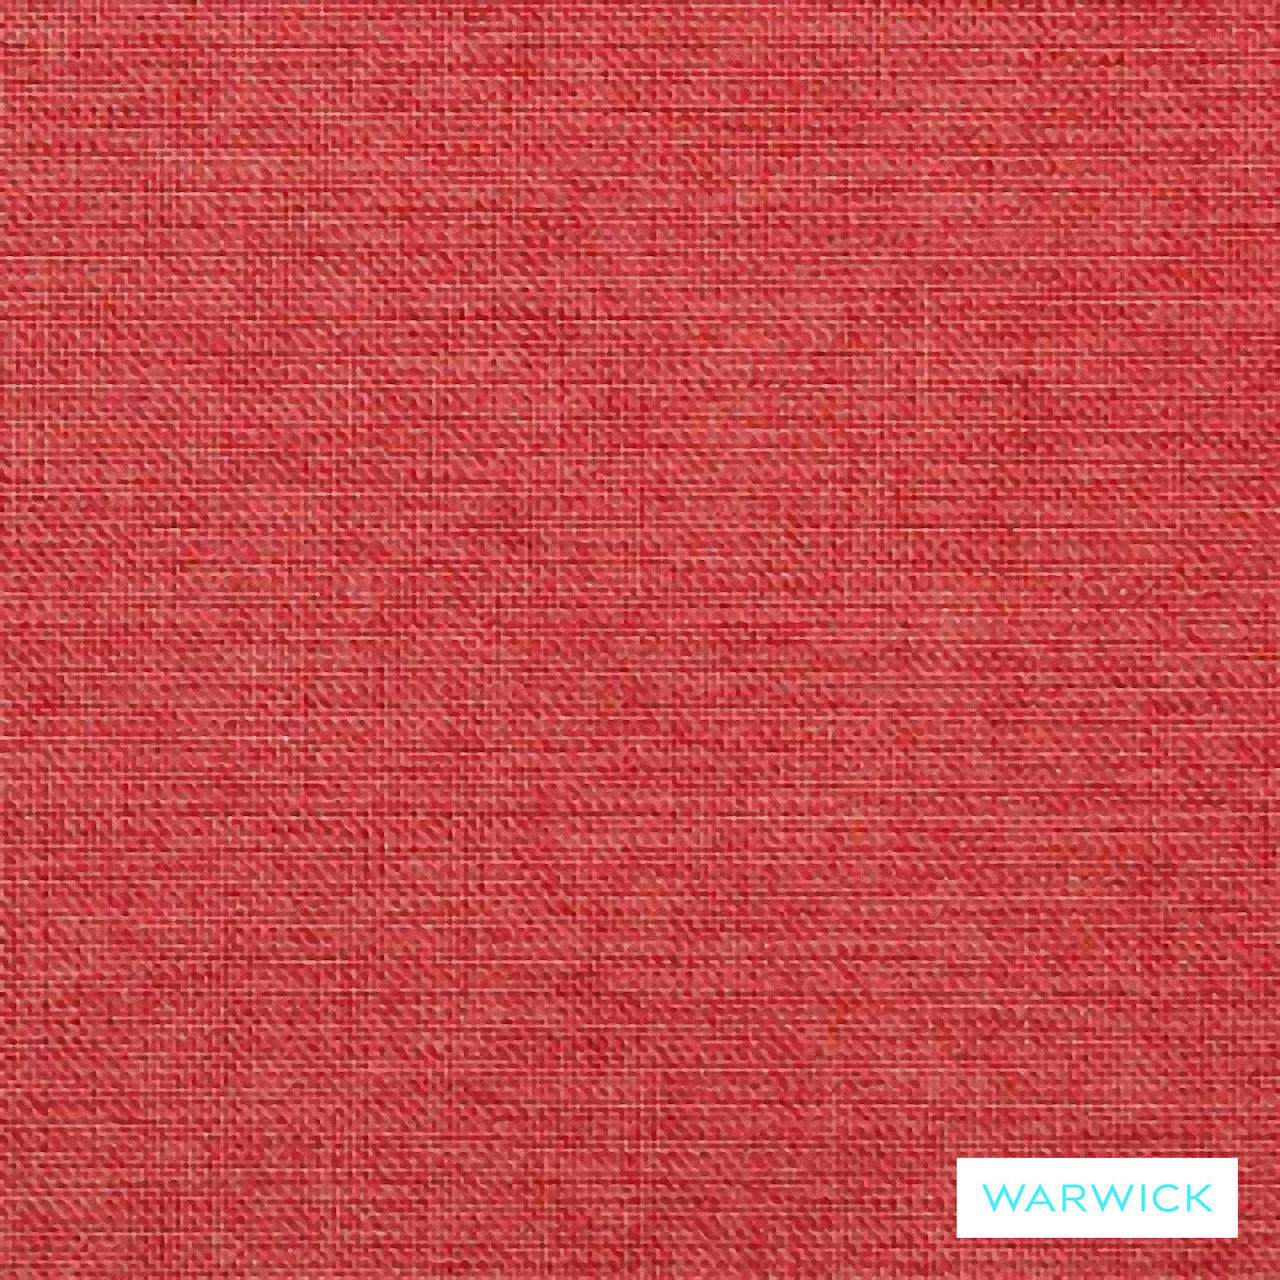 Warwick Beachcomber Scarlet    Upholstery Fabric - Plain, Red, Beach, Synthetic, Washable, Commercial Use, Halo